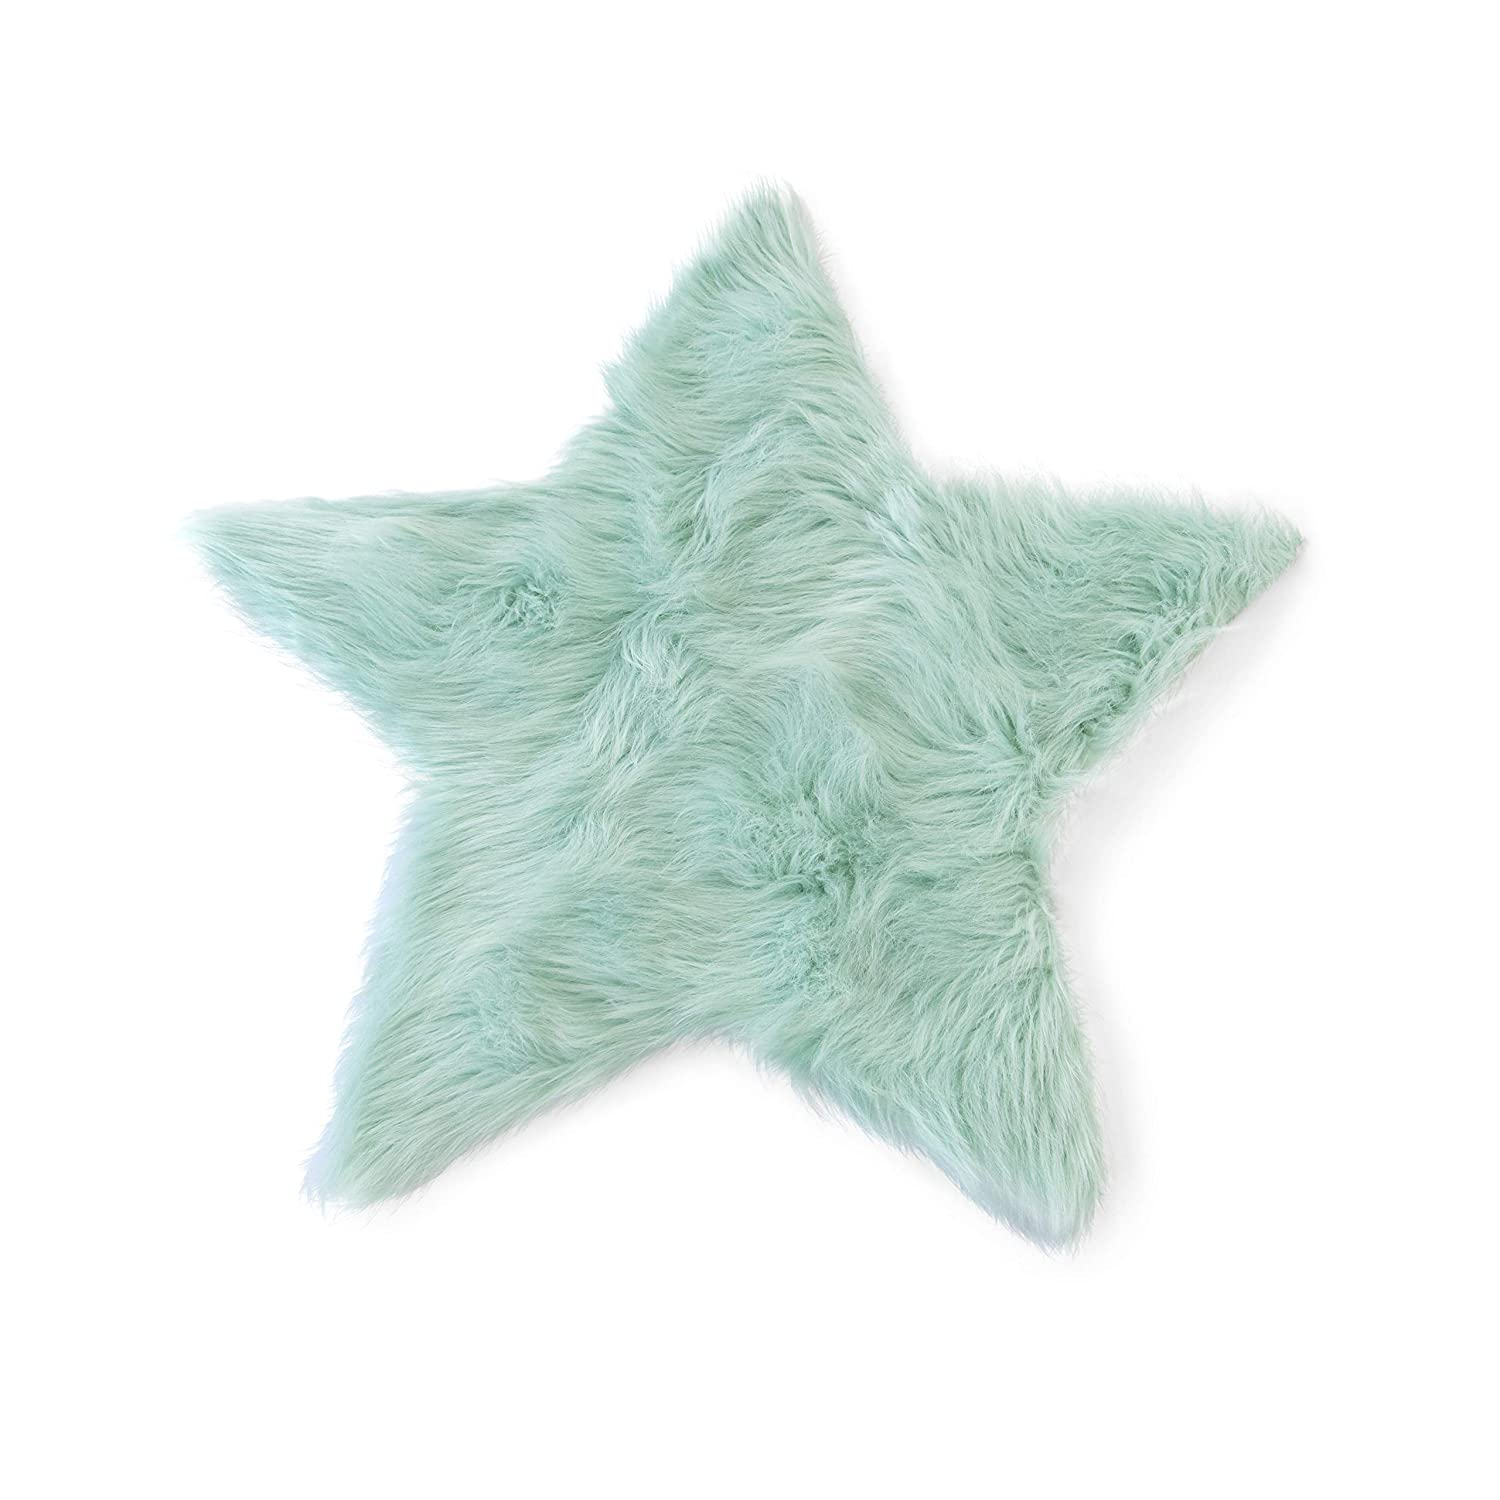 Machine Washable Faux Sheepskin Mint Star Rug 2' x 2' - Soft and silky - Perfect for baby's room, nursery, playroom (Star Small Mint) KROMA CARPETS